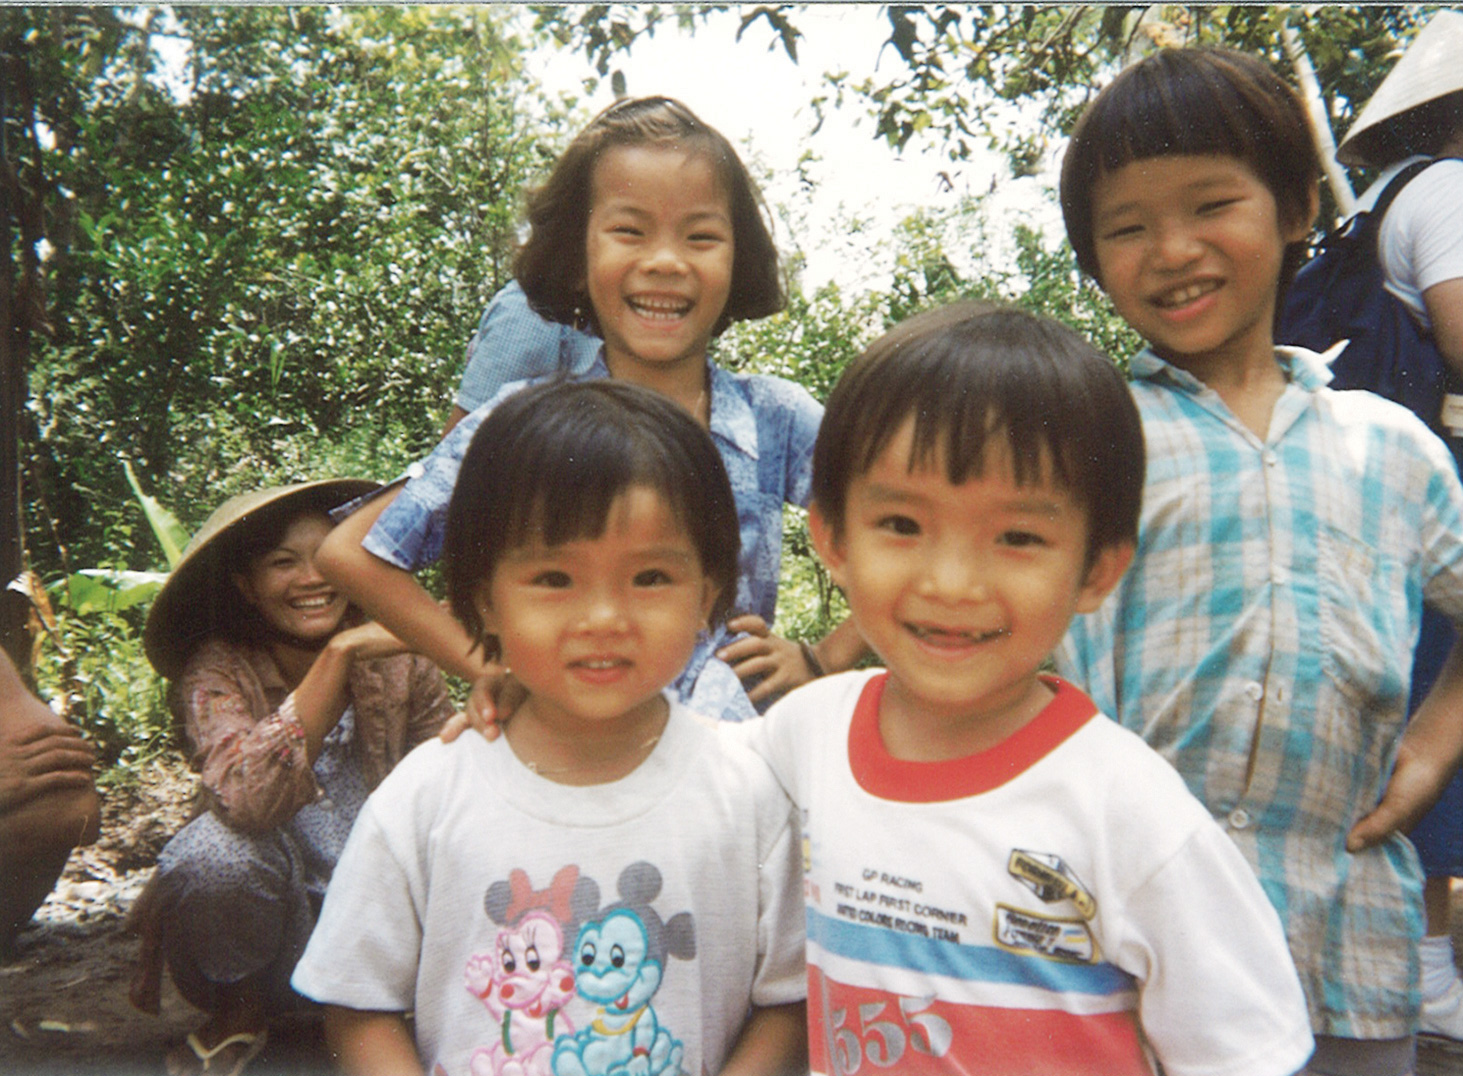 1995, Heifer Project International, Thailand